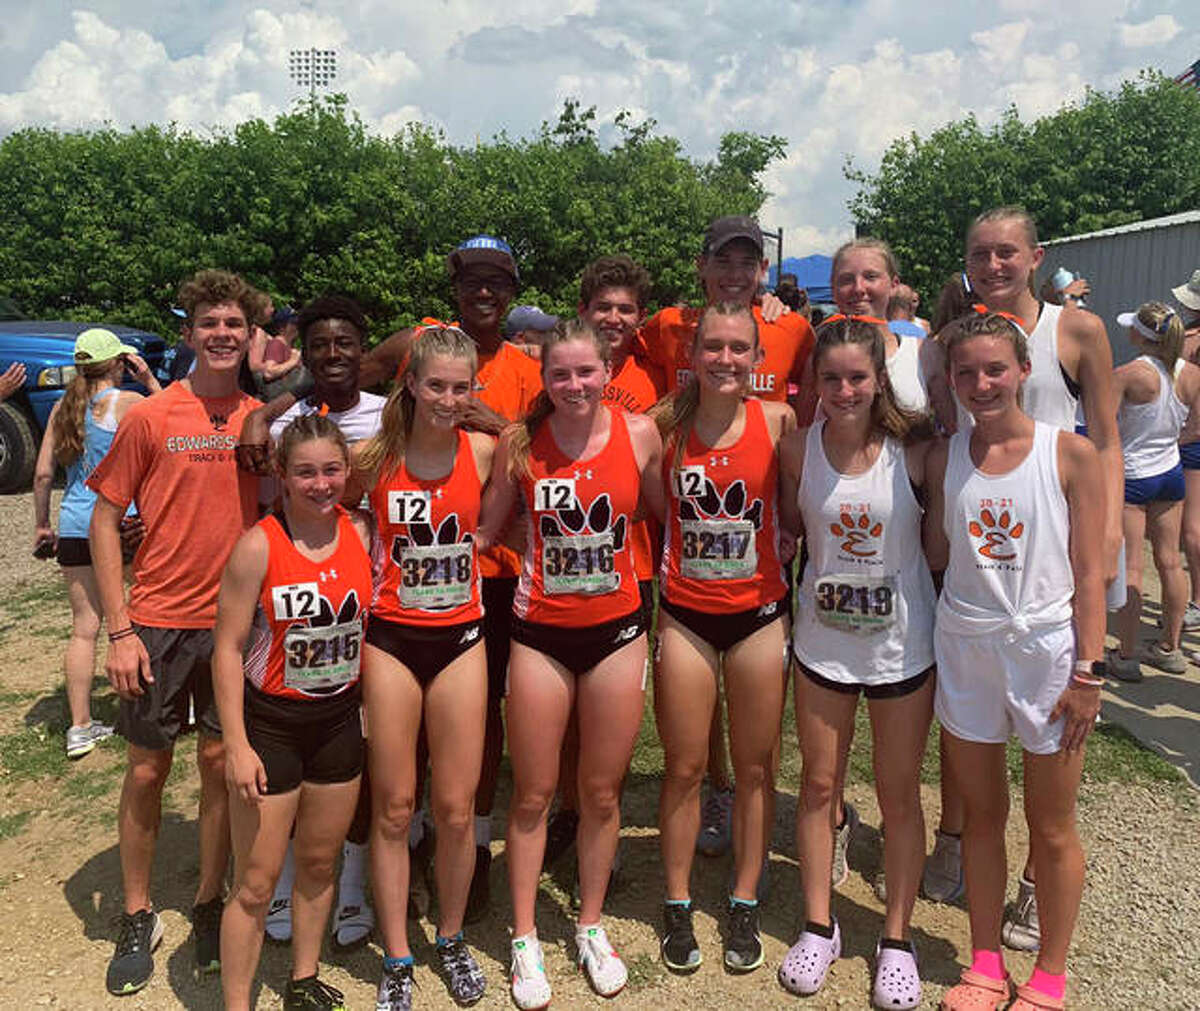 Edwardsville's 3,200-meter relay team of Olivia Coll, front left, Maya Lueking, from second from left, Riley Knoyle, front third from left, and Kaitlyn Loyet, front fourth from left, pose with members of the EHS girls and boys track teams after finishing fifth at the Class 3A state meet.